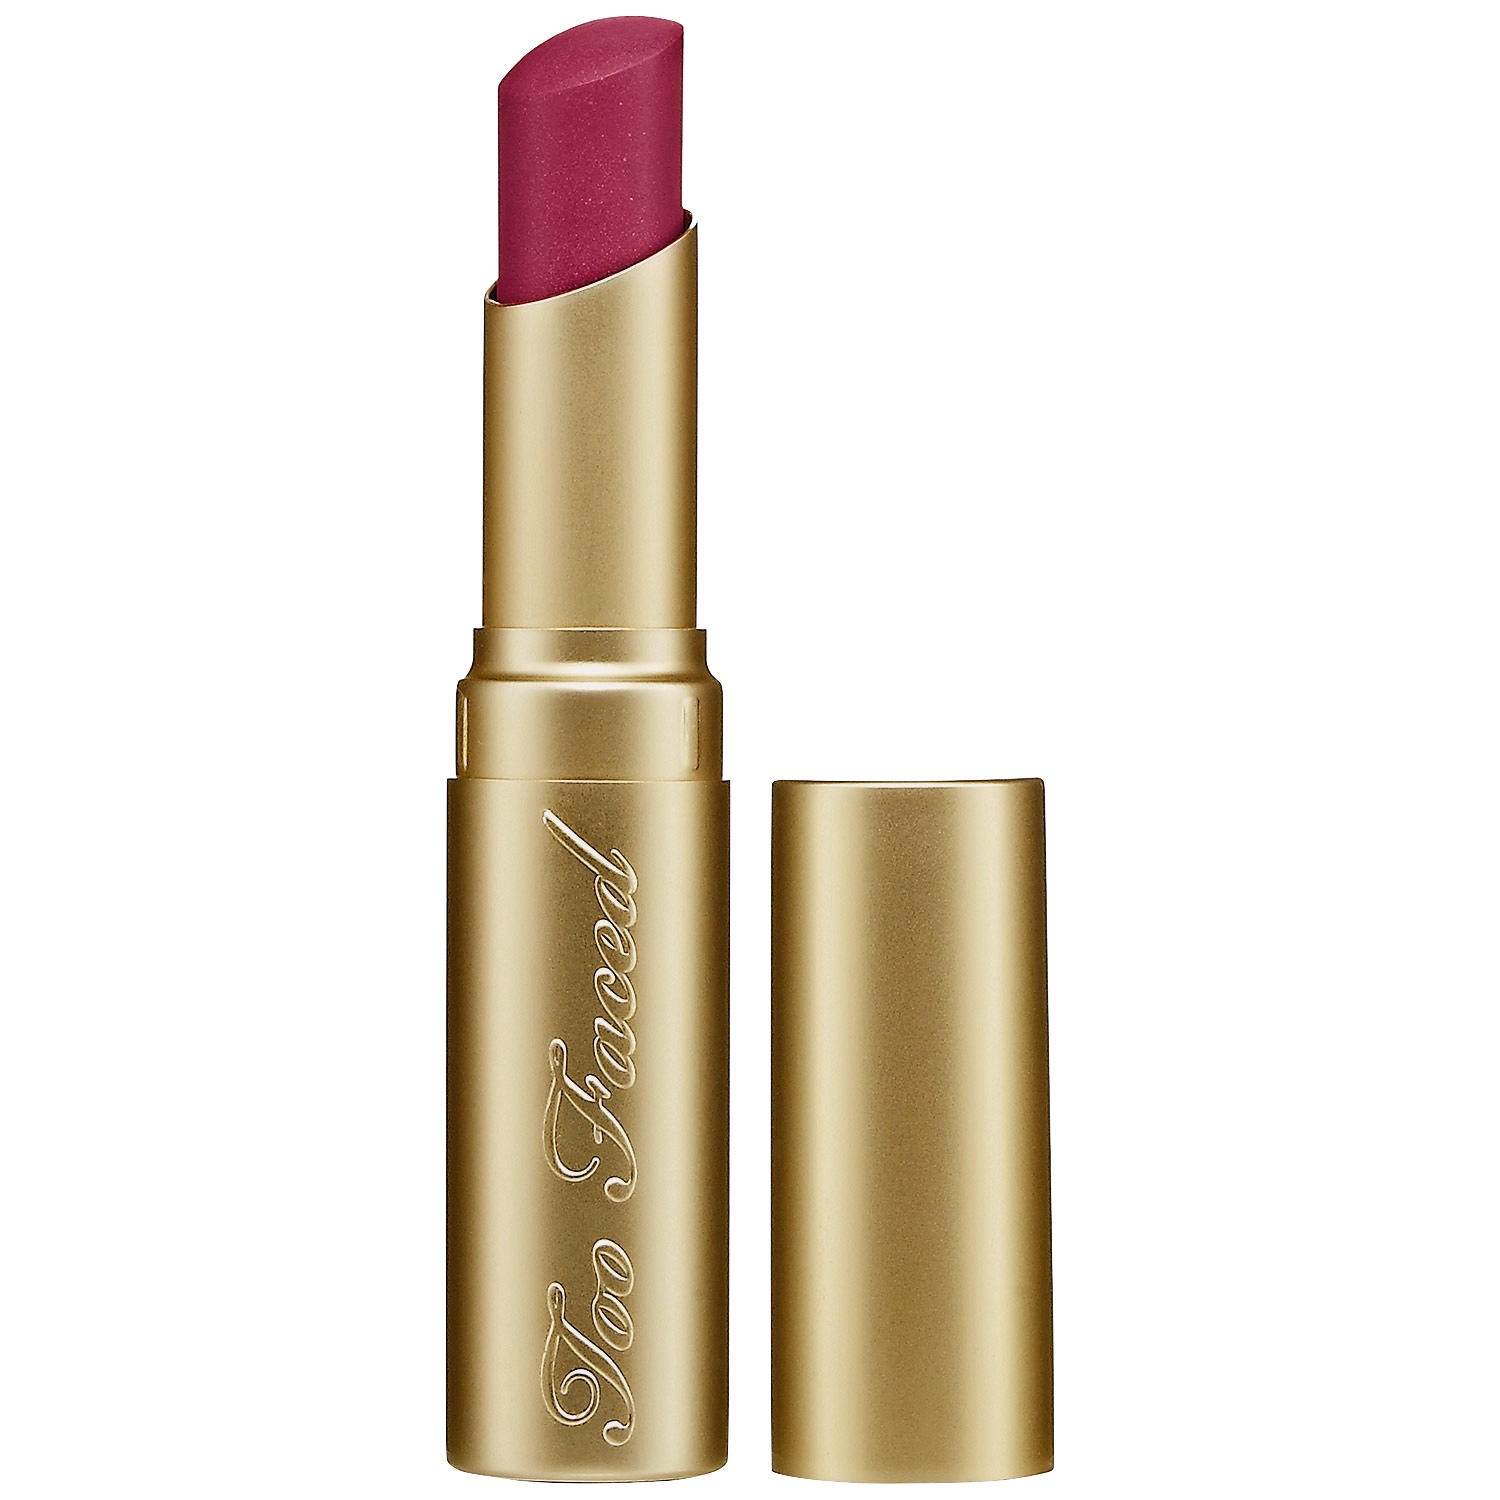 Too Faced La Creme Lipstick Loganberry